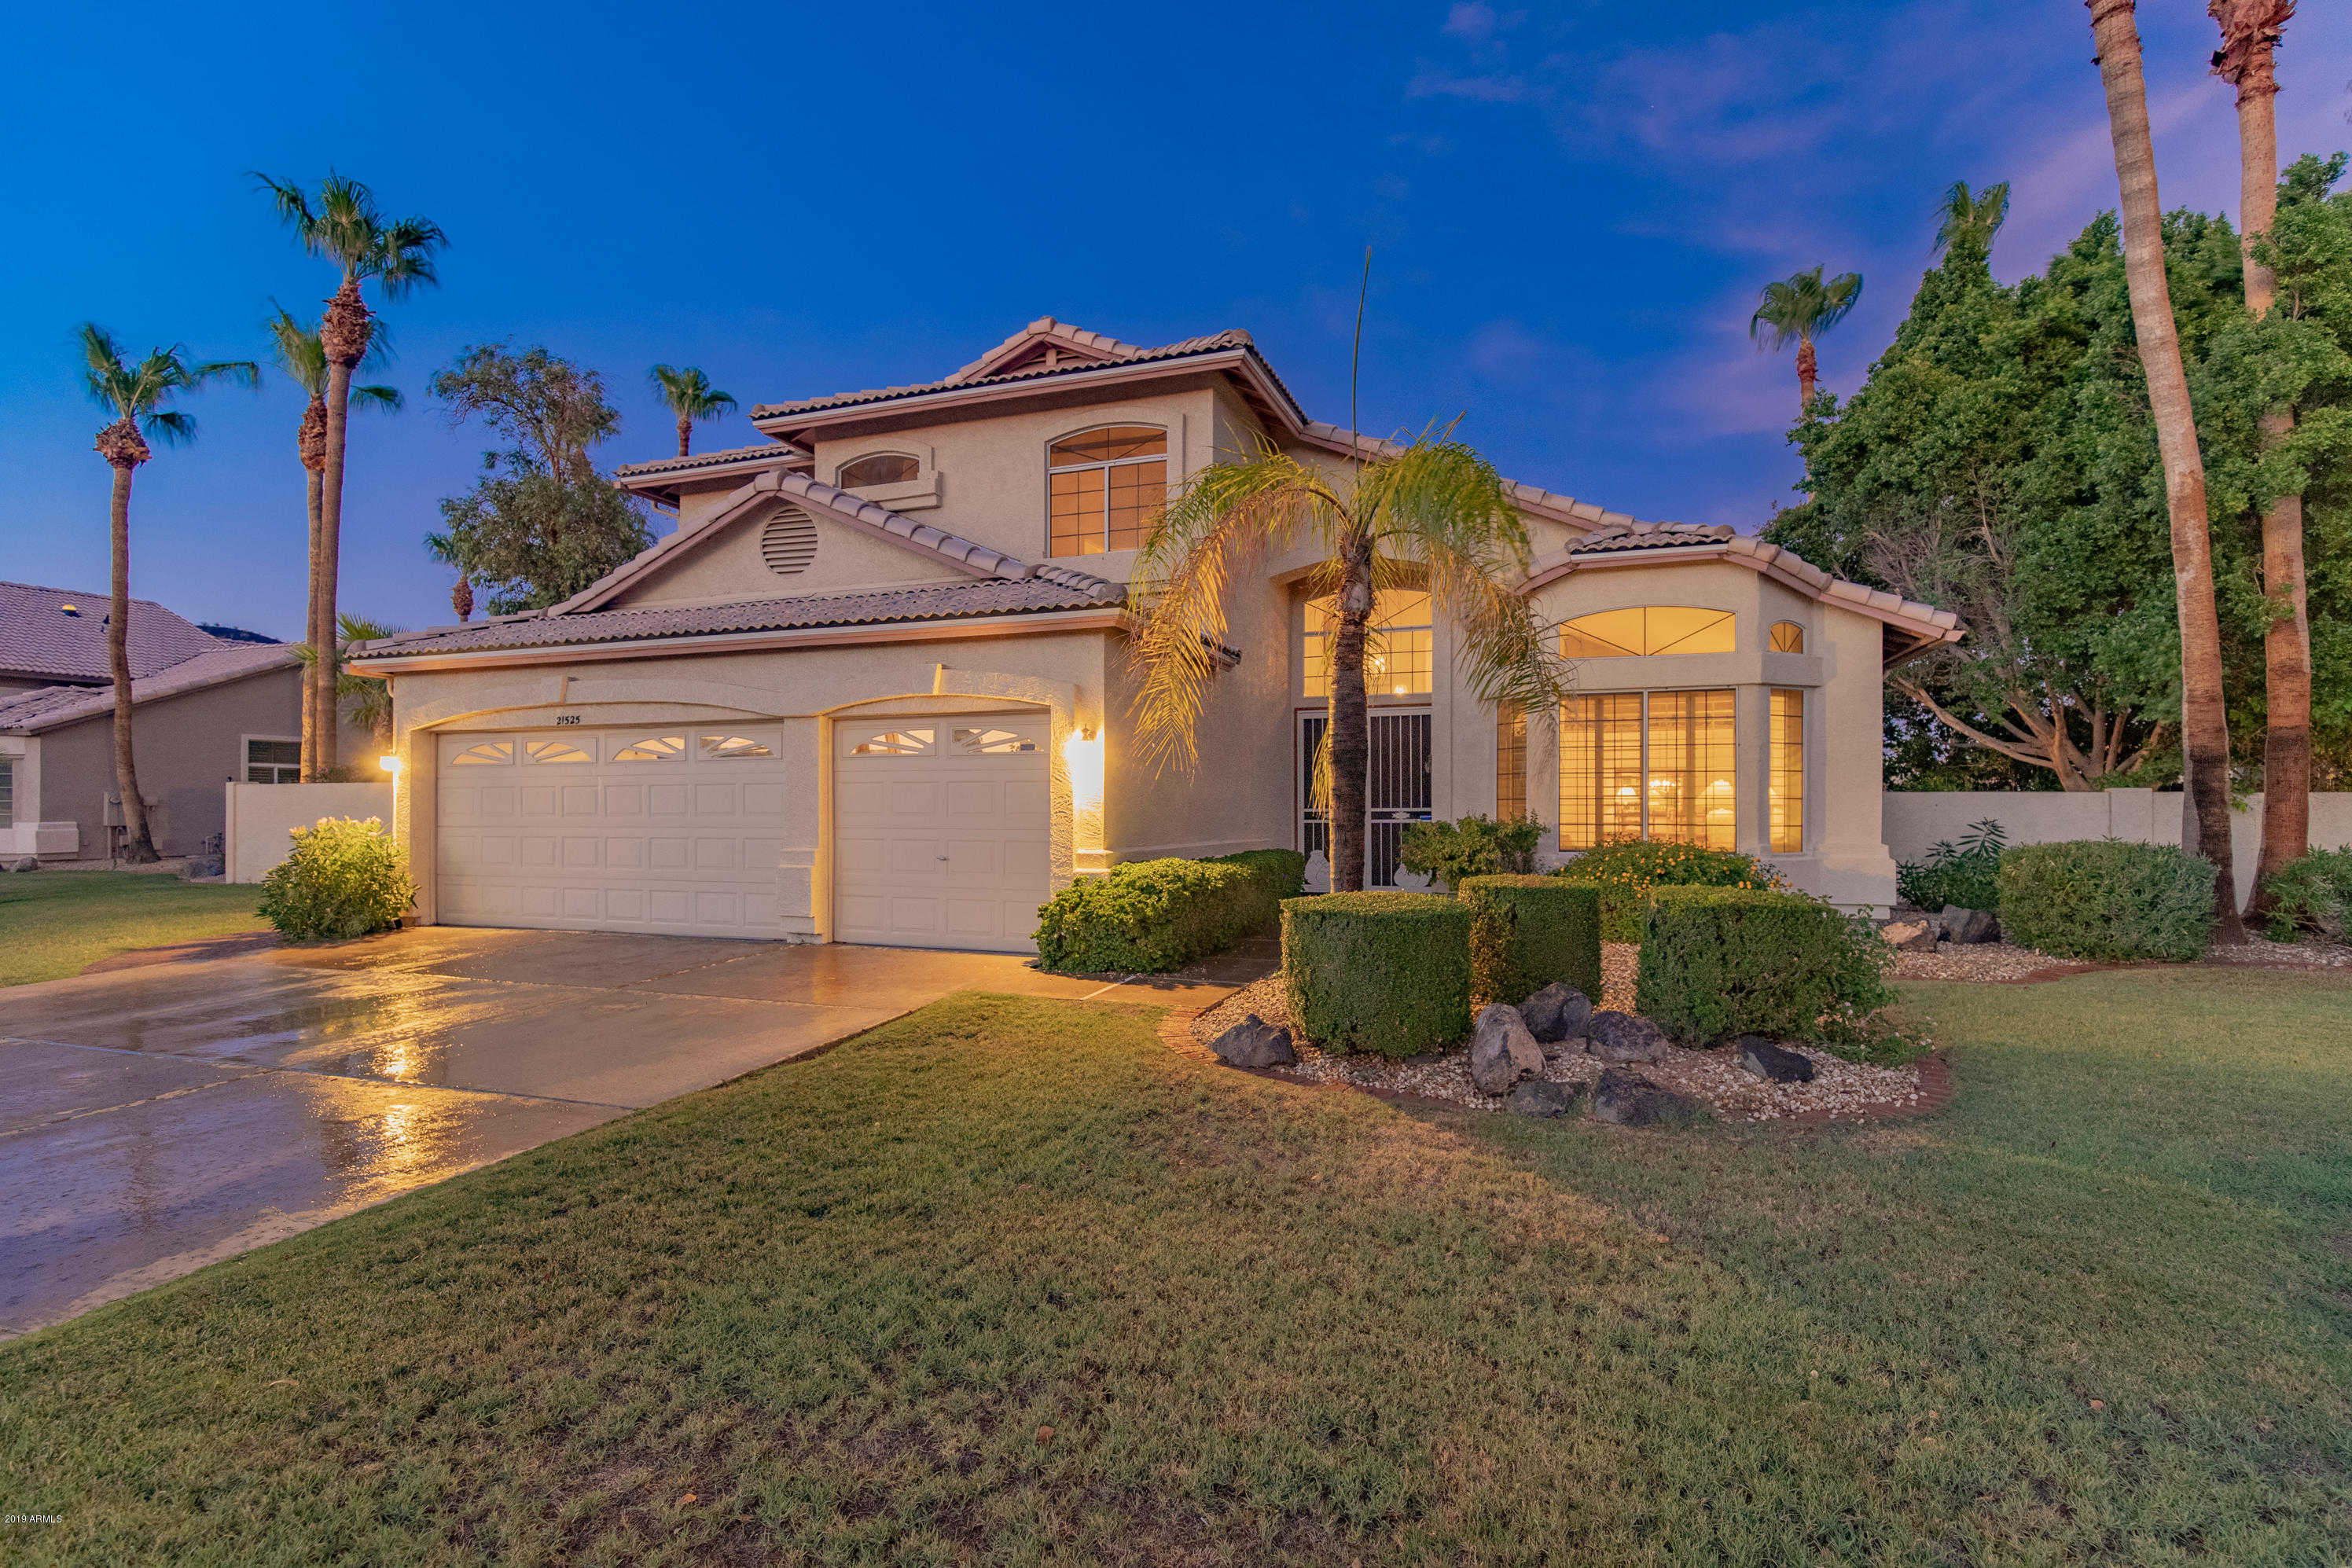 $540,000 - 4Br/3Ba - Home for Sale in Arrowhead Lakes 1 Replat Lt 1-204 A-h J-n P-r, Glendale